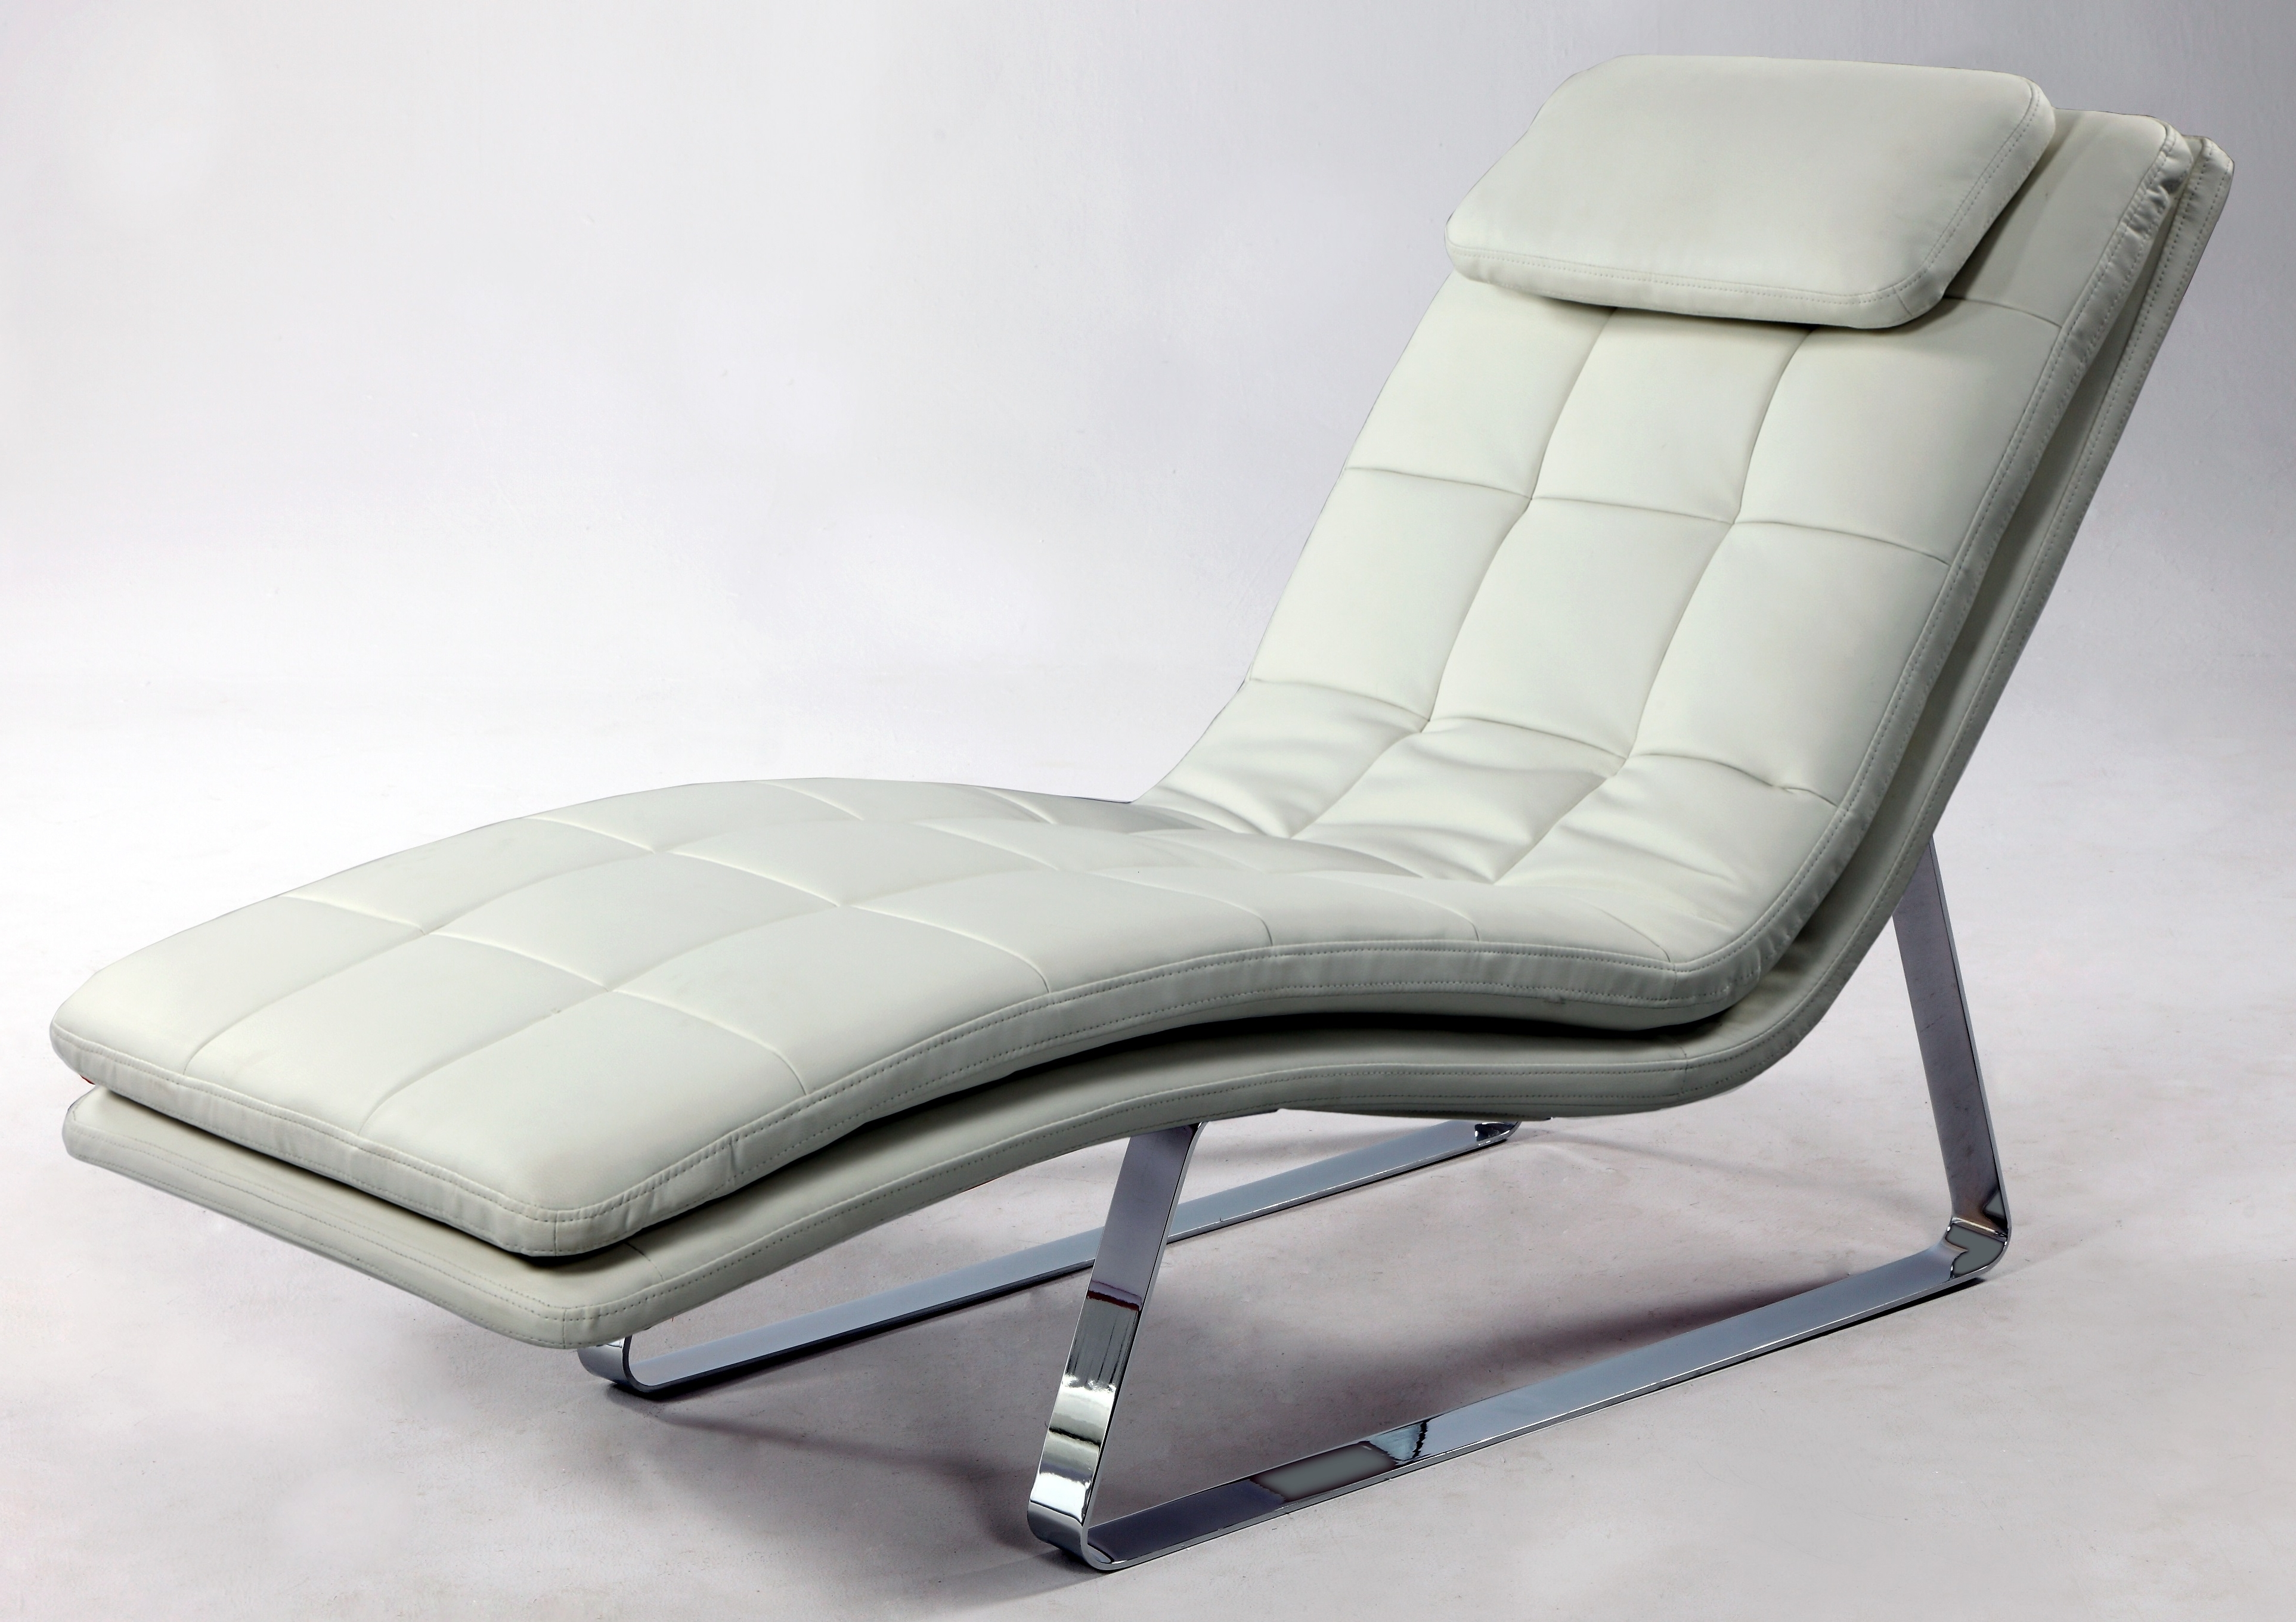 Most Recently Released White Chaises For Full Bonded Leather Tufted Chaise Lounge With Chrome Legs New York (View 9 of 15)